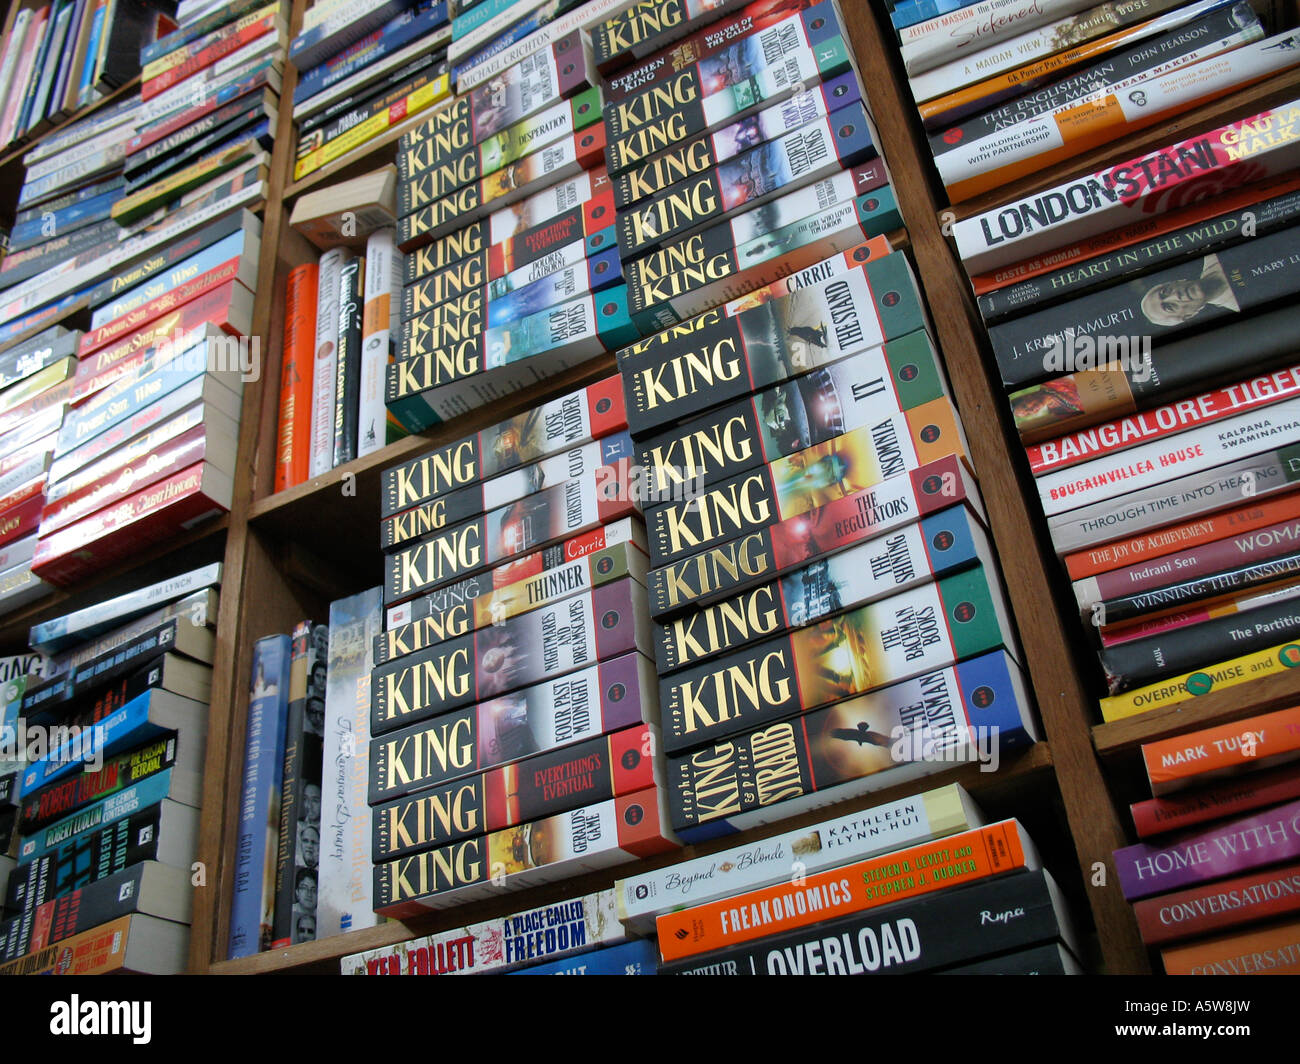 Stephen King novels on a book shelf in a shop - Stock Image